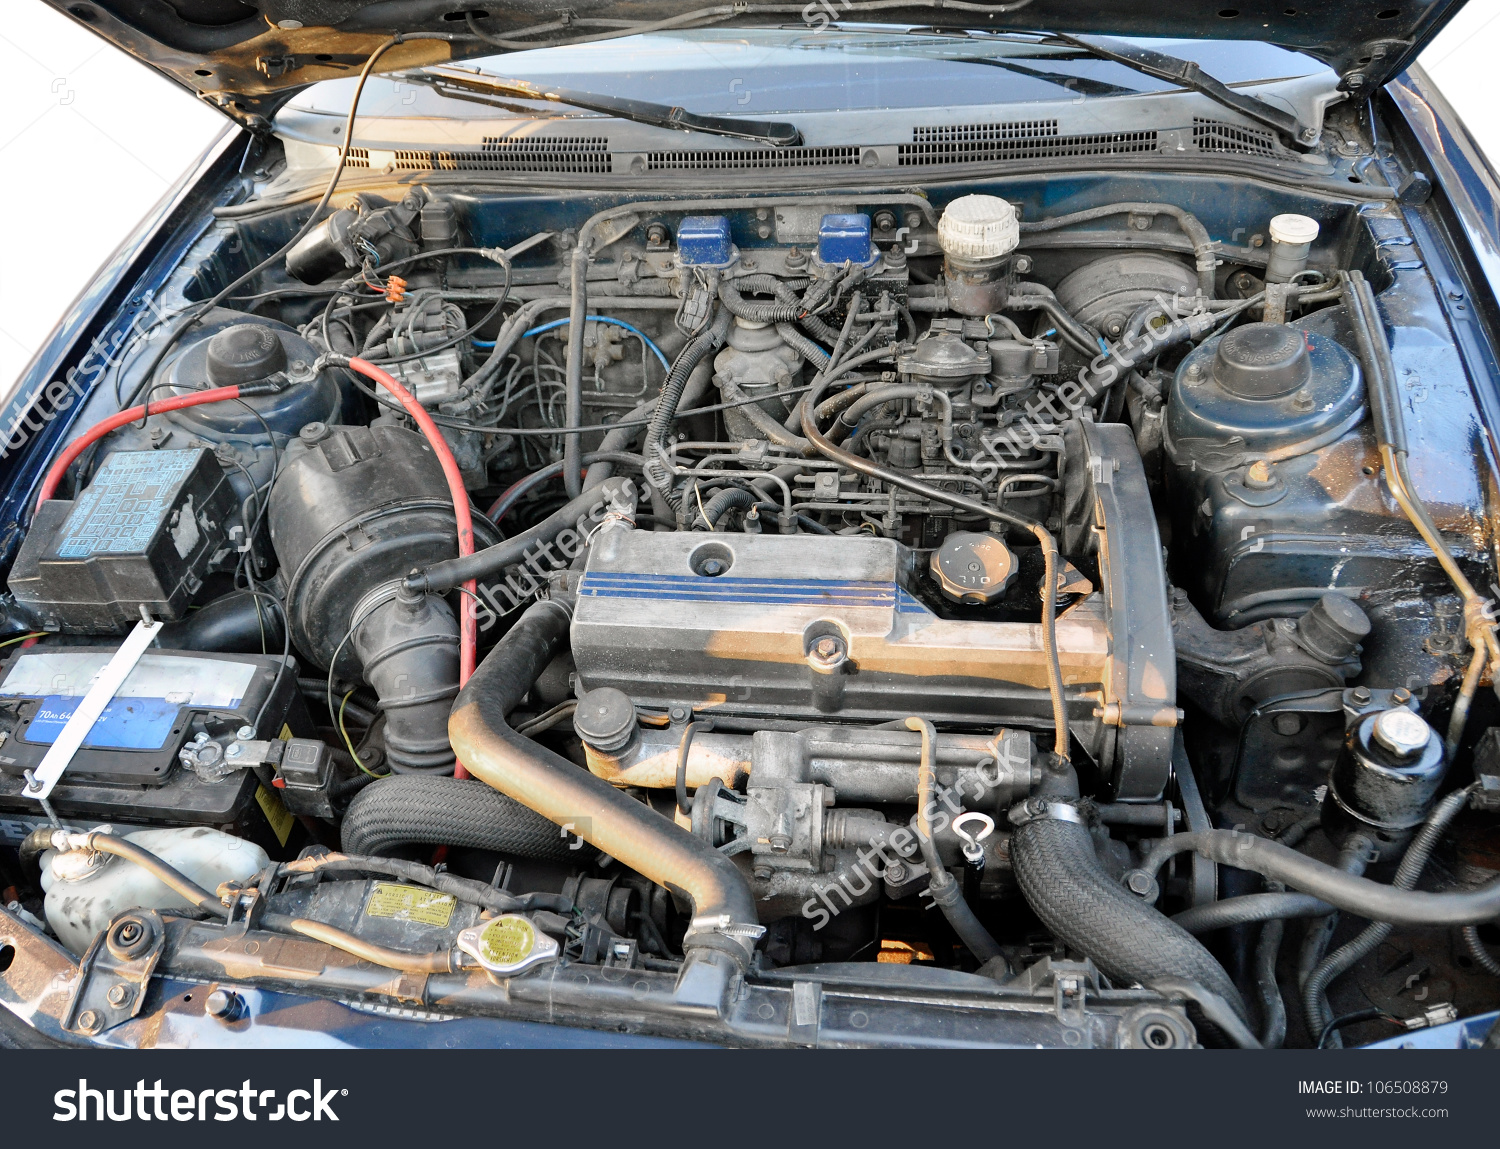 Automotive Engine Compartment Old Car Stock Photo 106508879.